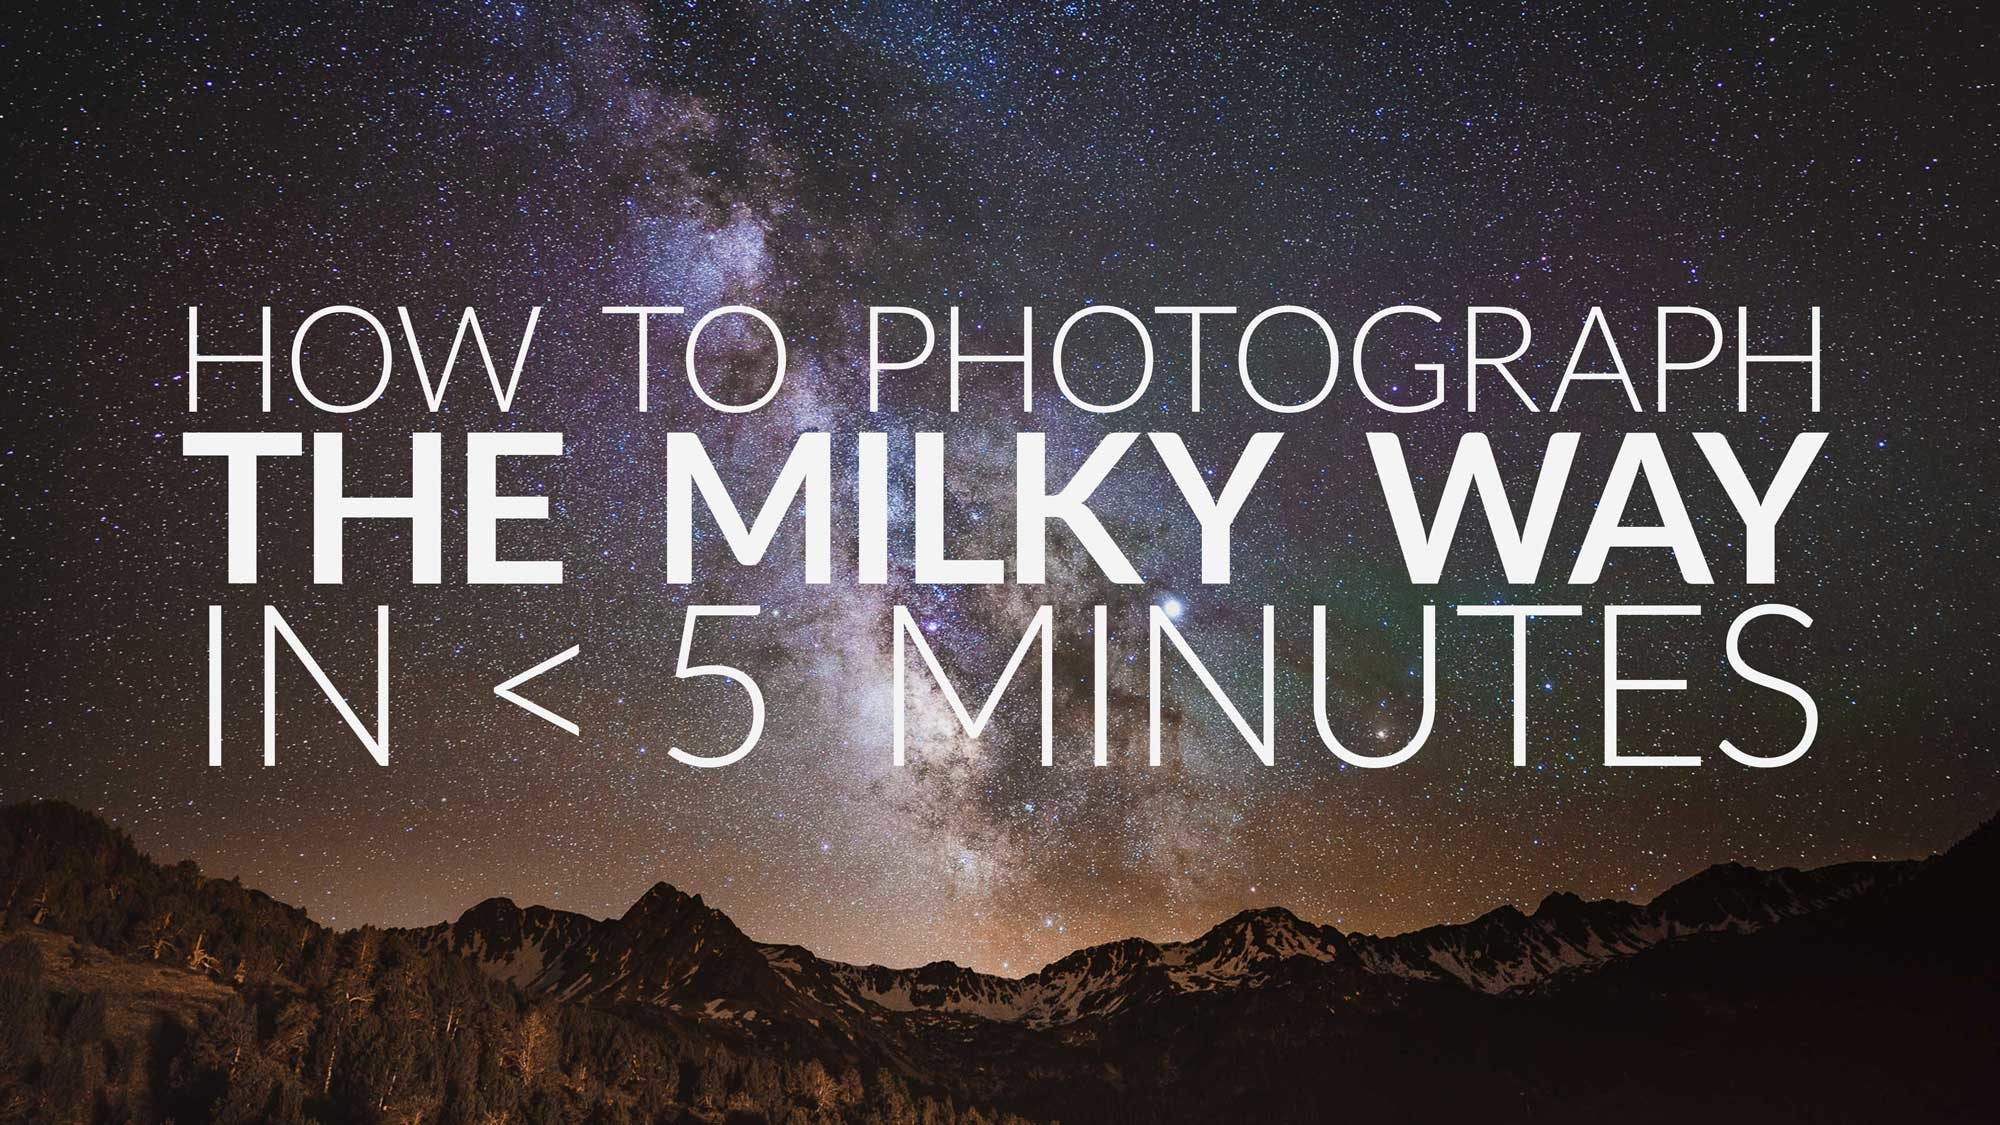 How to Photograph the Milky Way in Under 5 Minutes